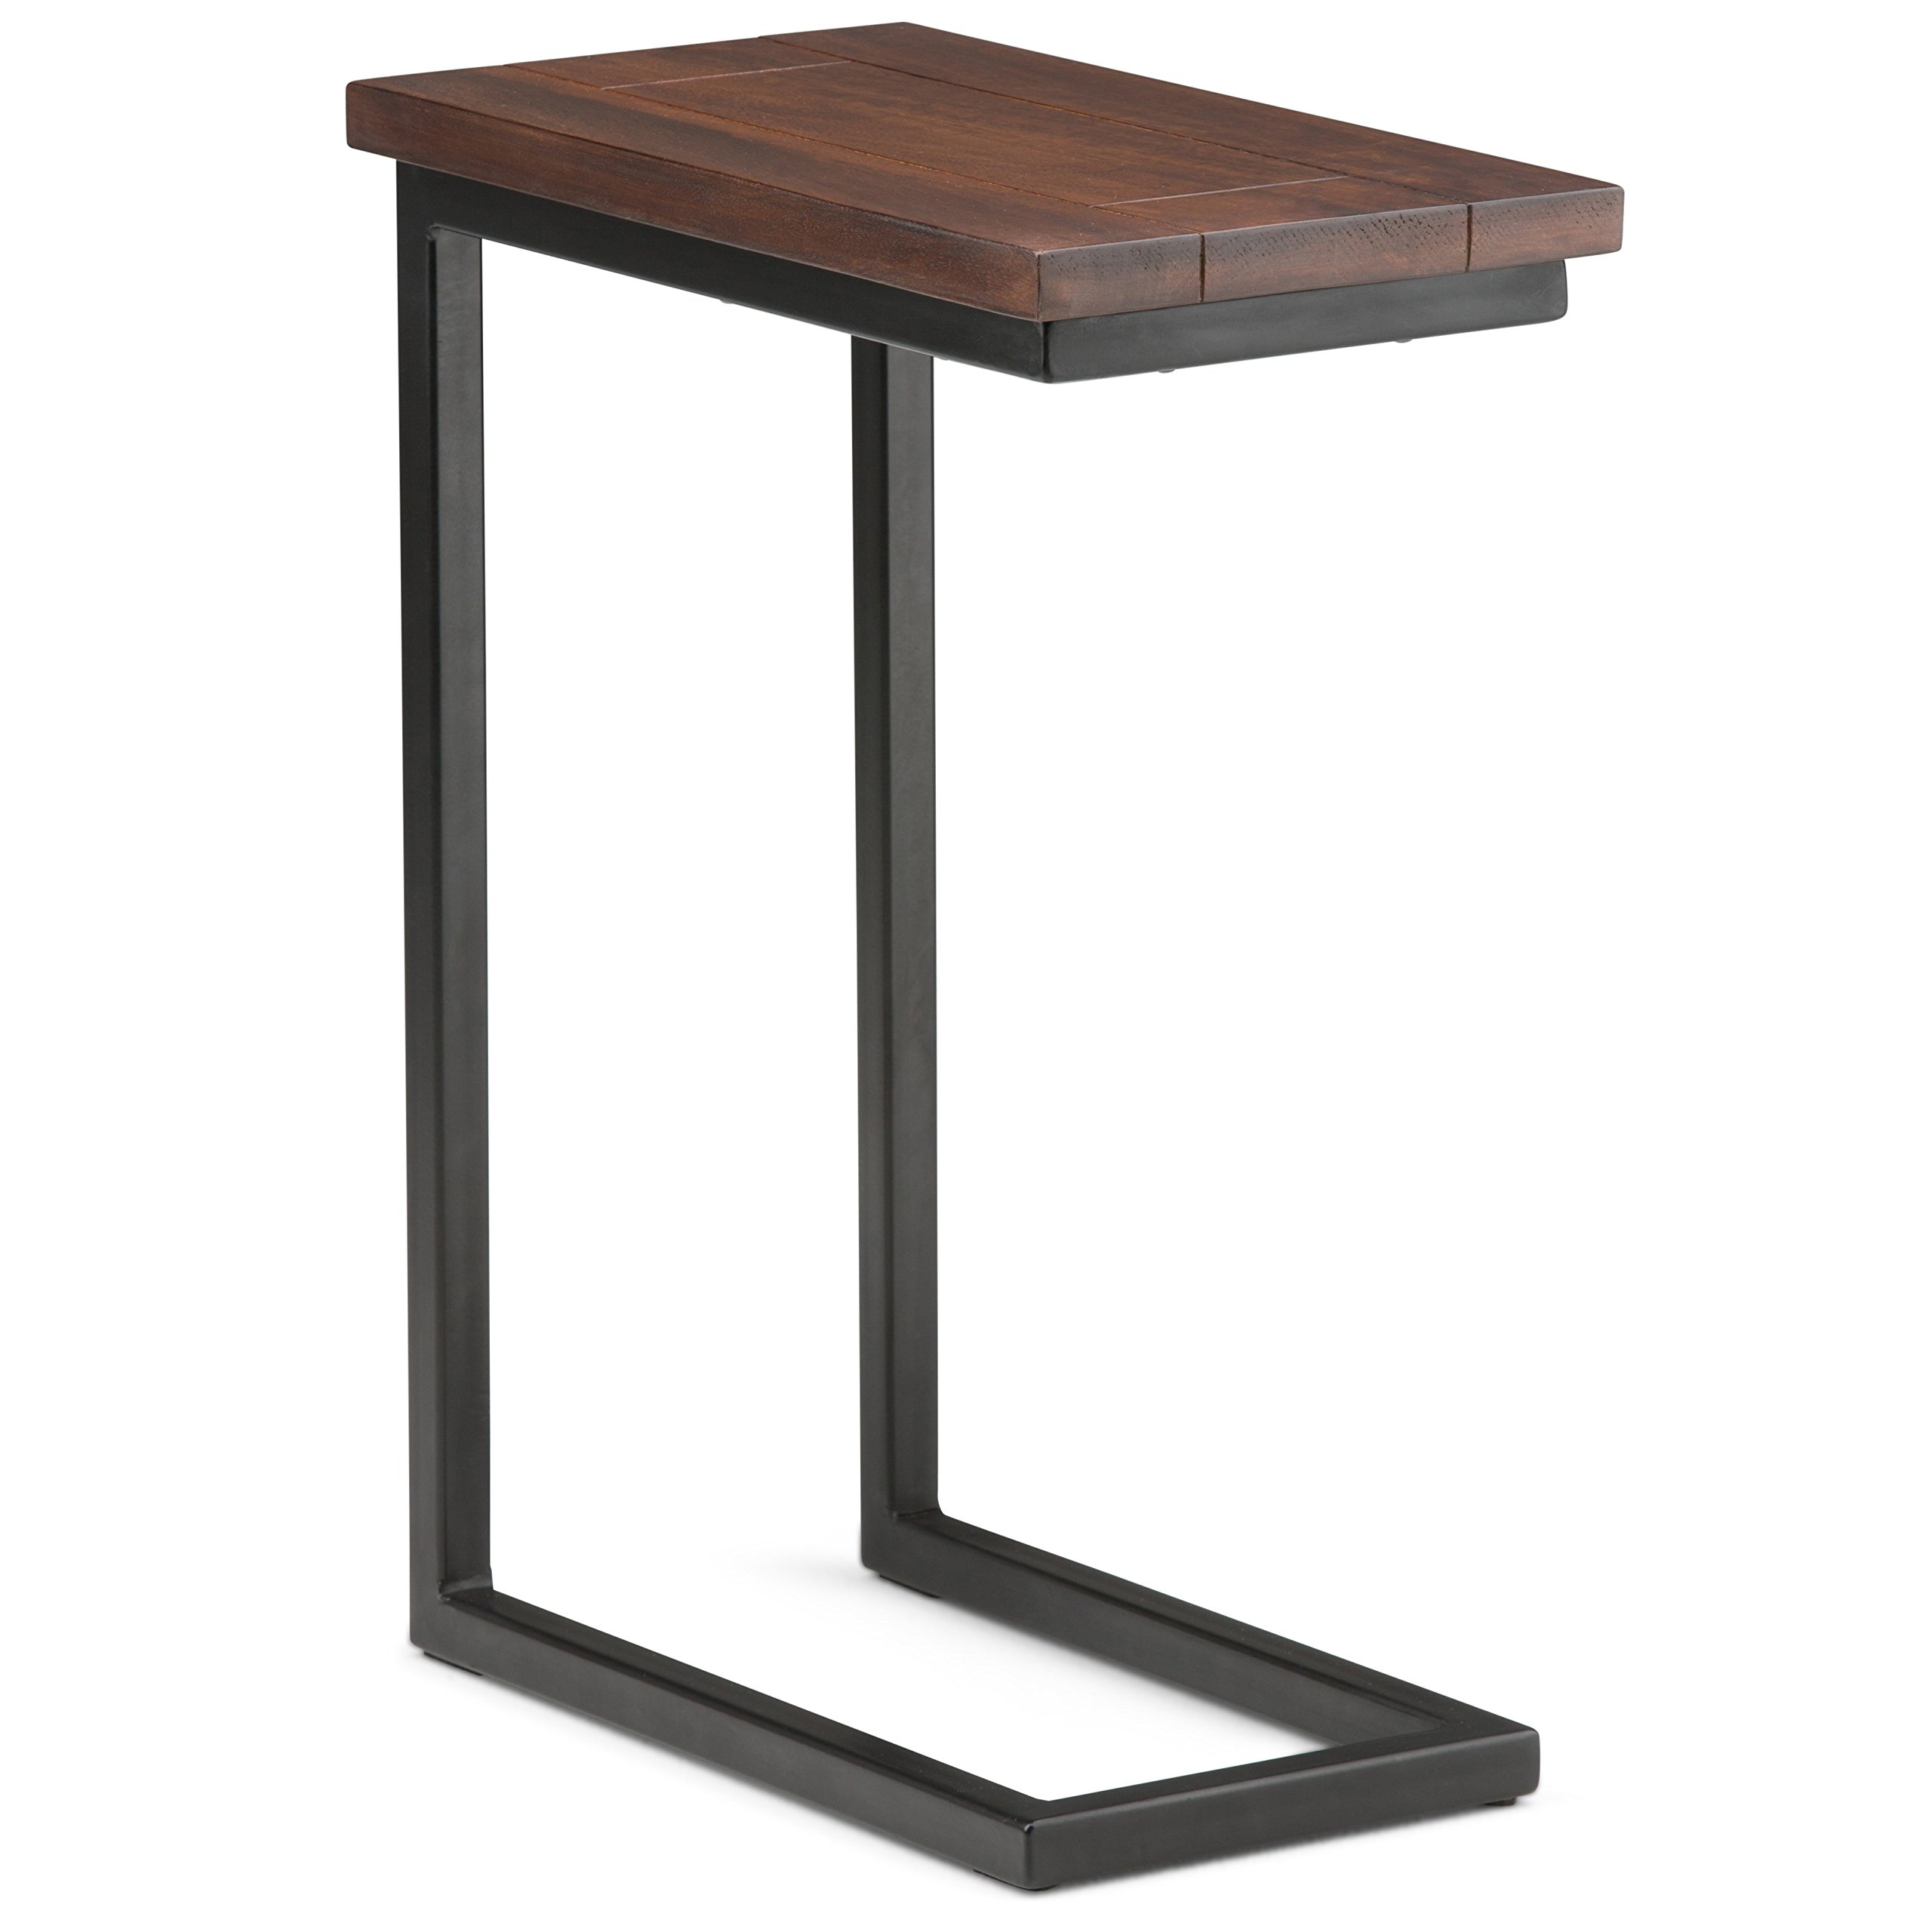 Simpli Home Skyler Solid Mango Wood & Metal C Side Table, Dark Cognac Brown